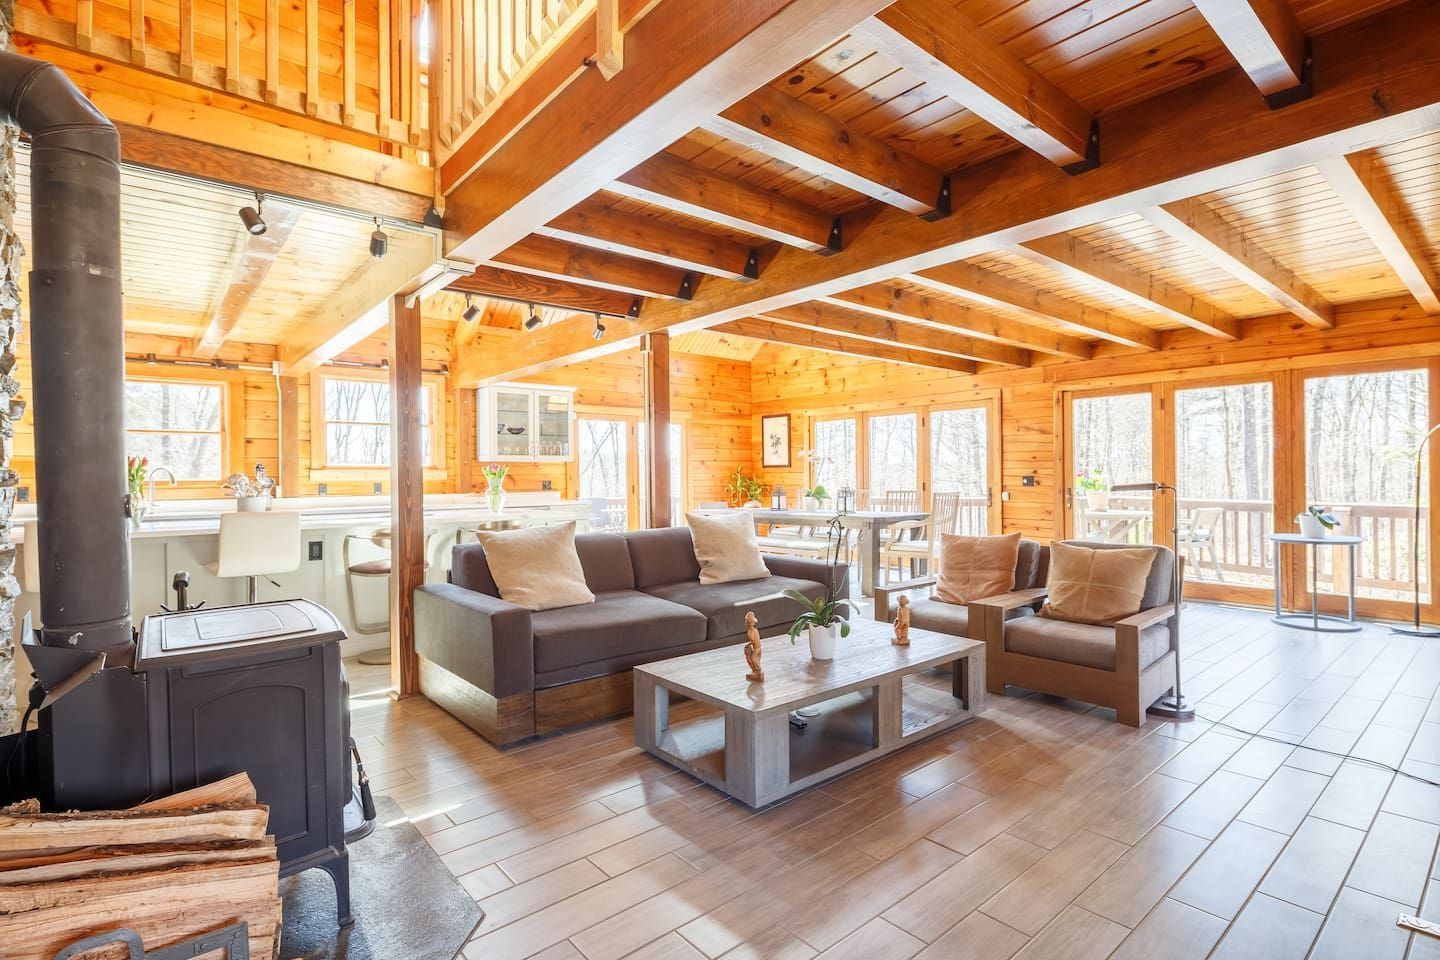 Enchanting Rustic Log House In Hudson Valley Houses For Rent In Saugerties Renting A House Log Homes Saugerties